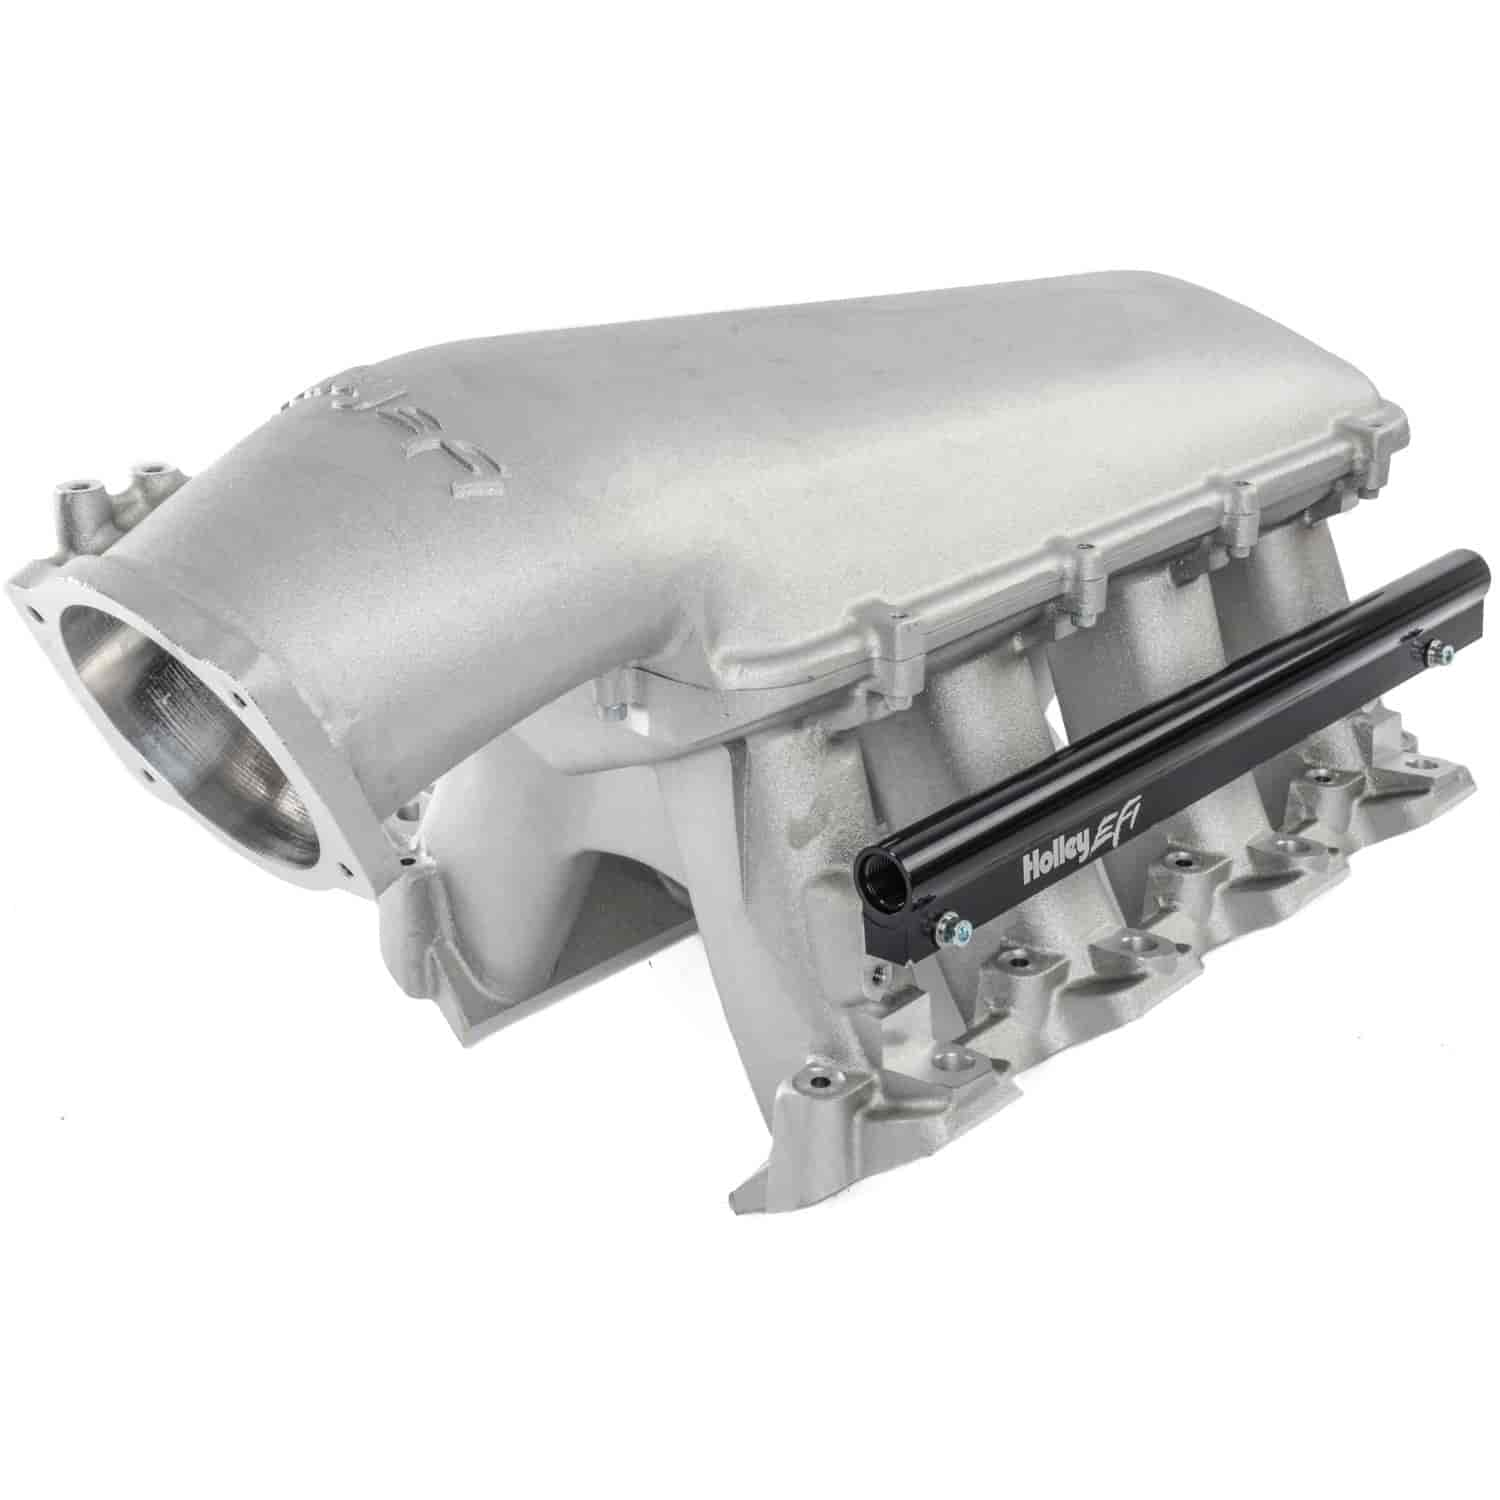 Holley 300-123 - Holley LS Modular High-Ram Intake Manifolds - EFI